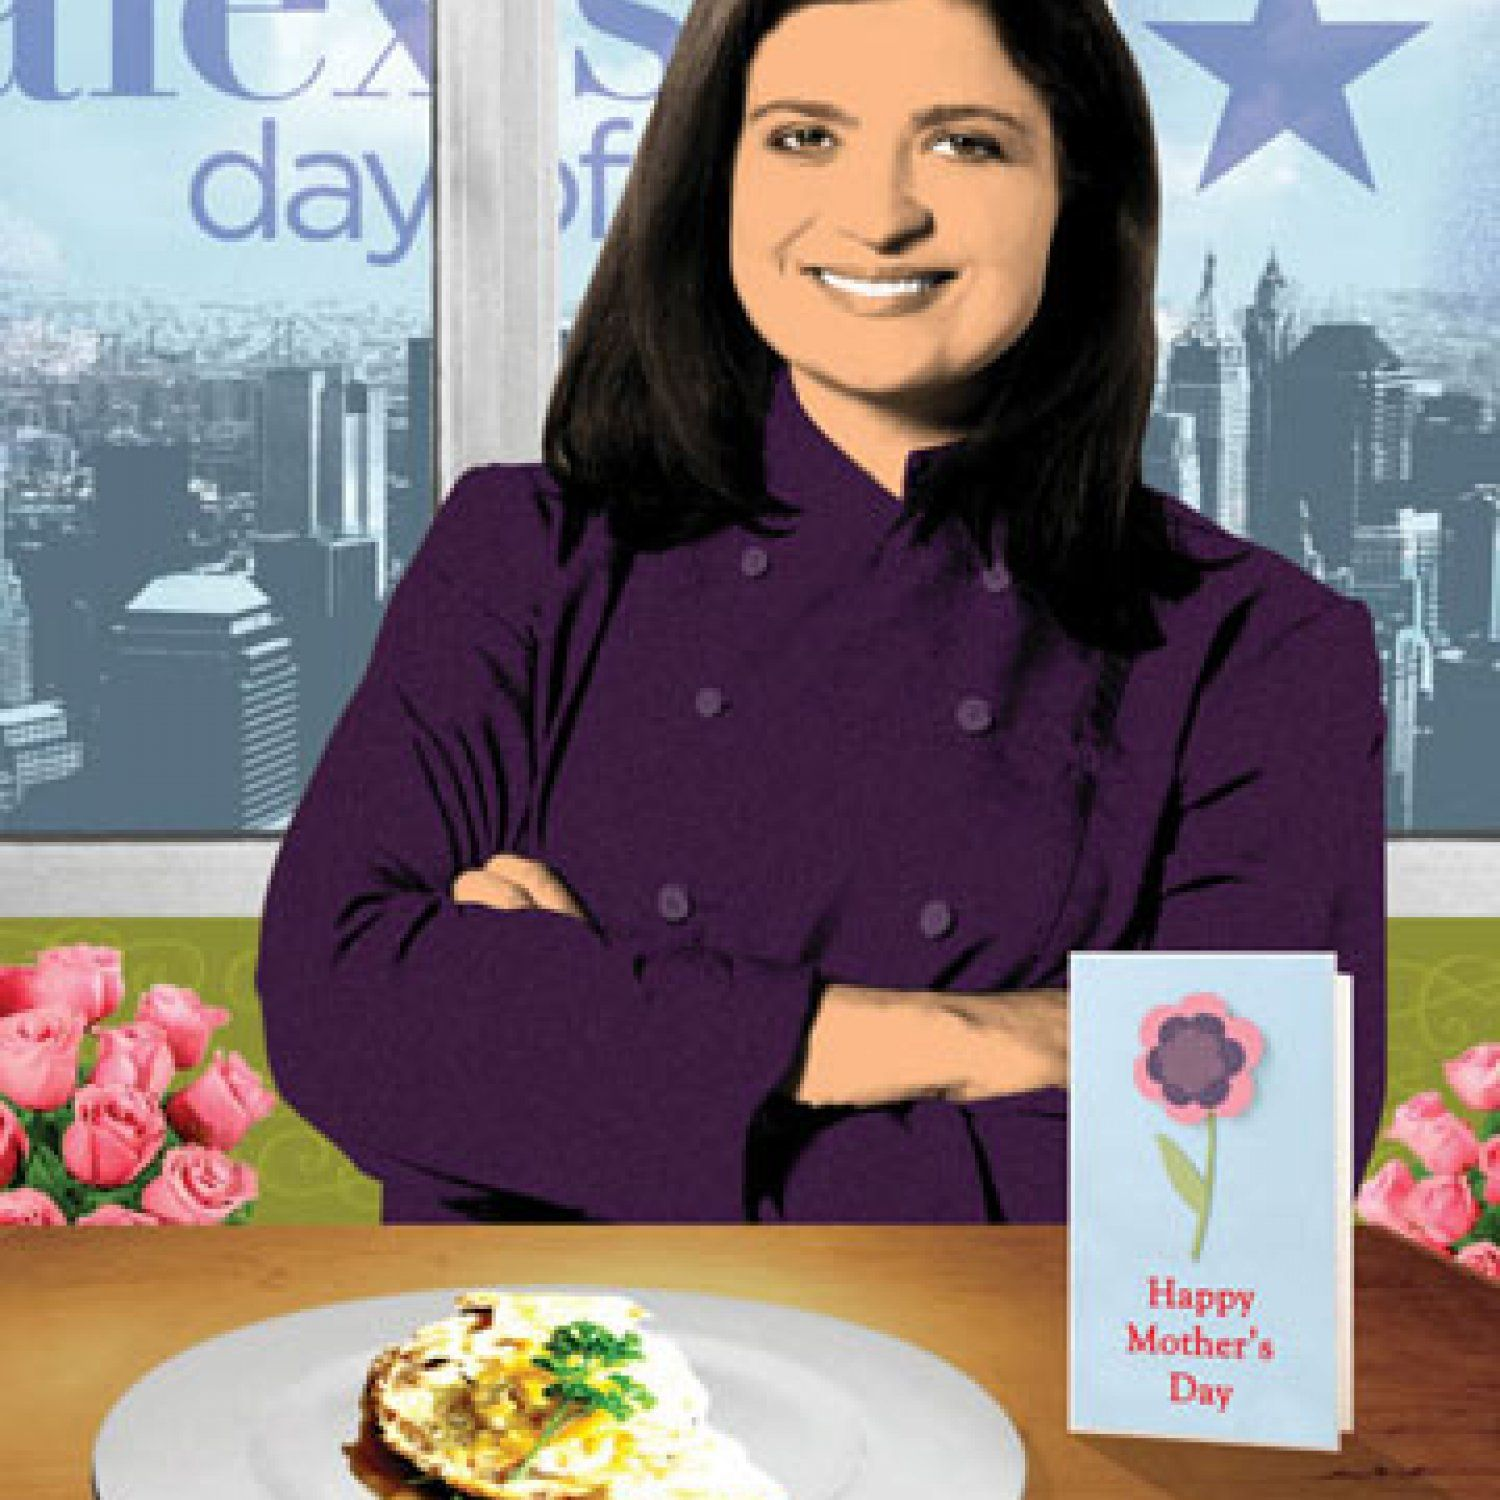 She's the executive chef at two NYC hot spots—Butter restaurant and a supper club with live entertainment called The Darby—and in her spare time tapes Food Network shows (Alex's Day Off, Chopped All-Stars and others). But Alex Guarnaschelli will still find time to celebrate special occasions with her family by whipping up simple, fresh meals like this omelet. - FamilyCircle.com